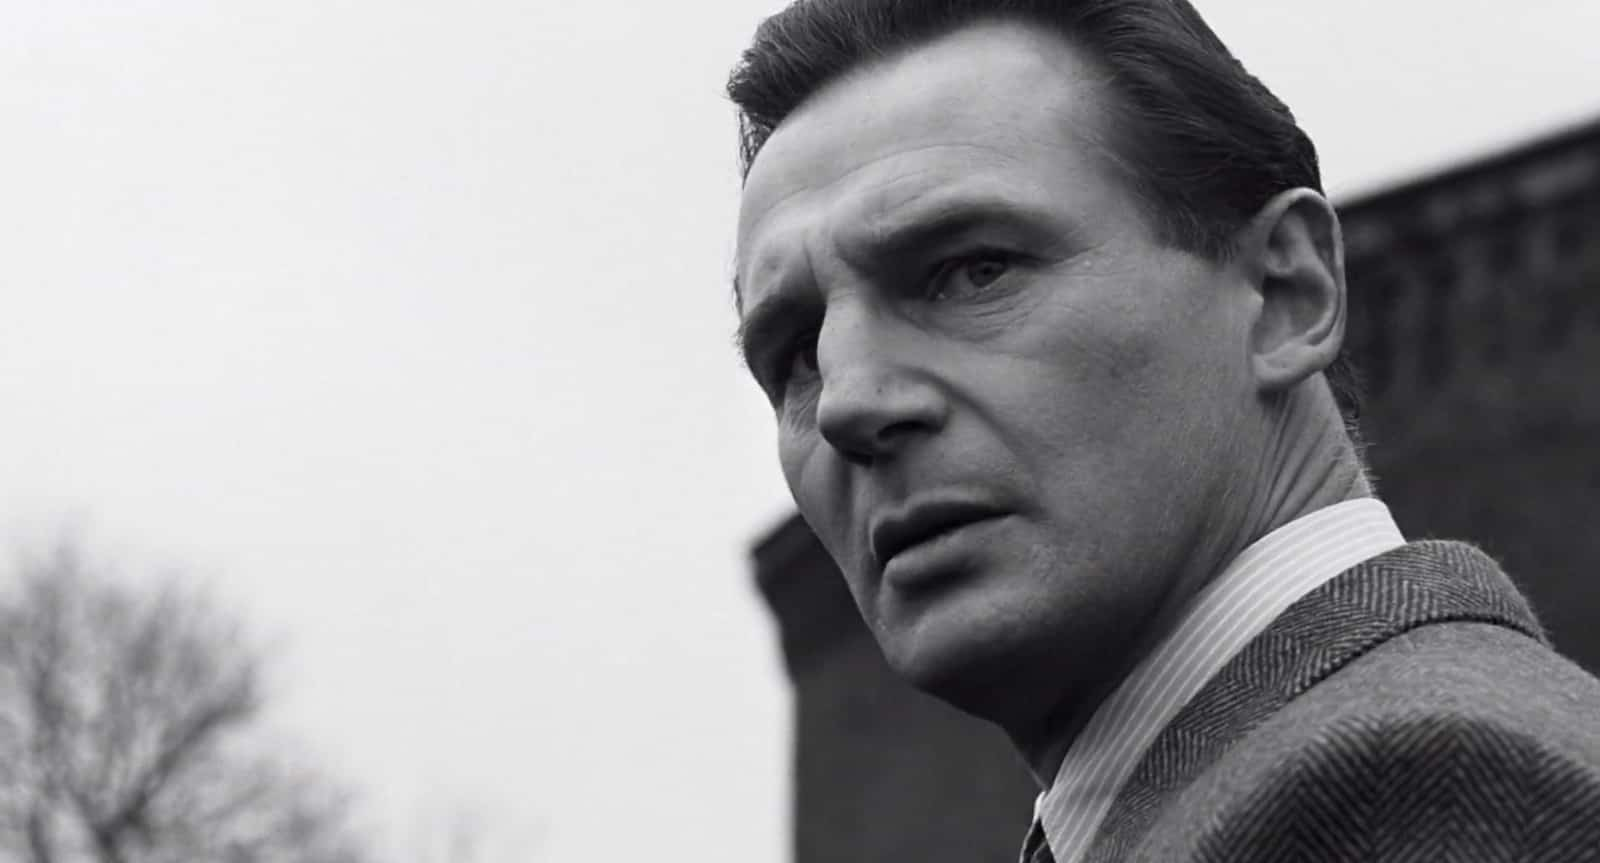 Wide Angle Shot - Camera Movements and Camera Angles - Schindlers List - 2